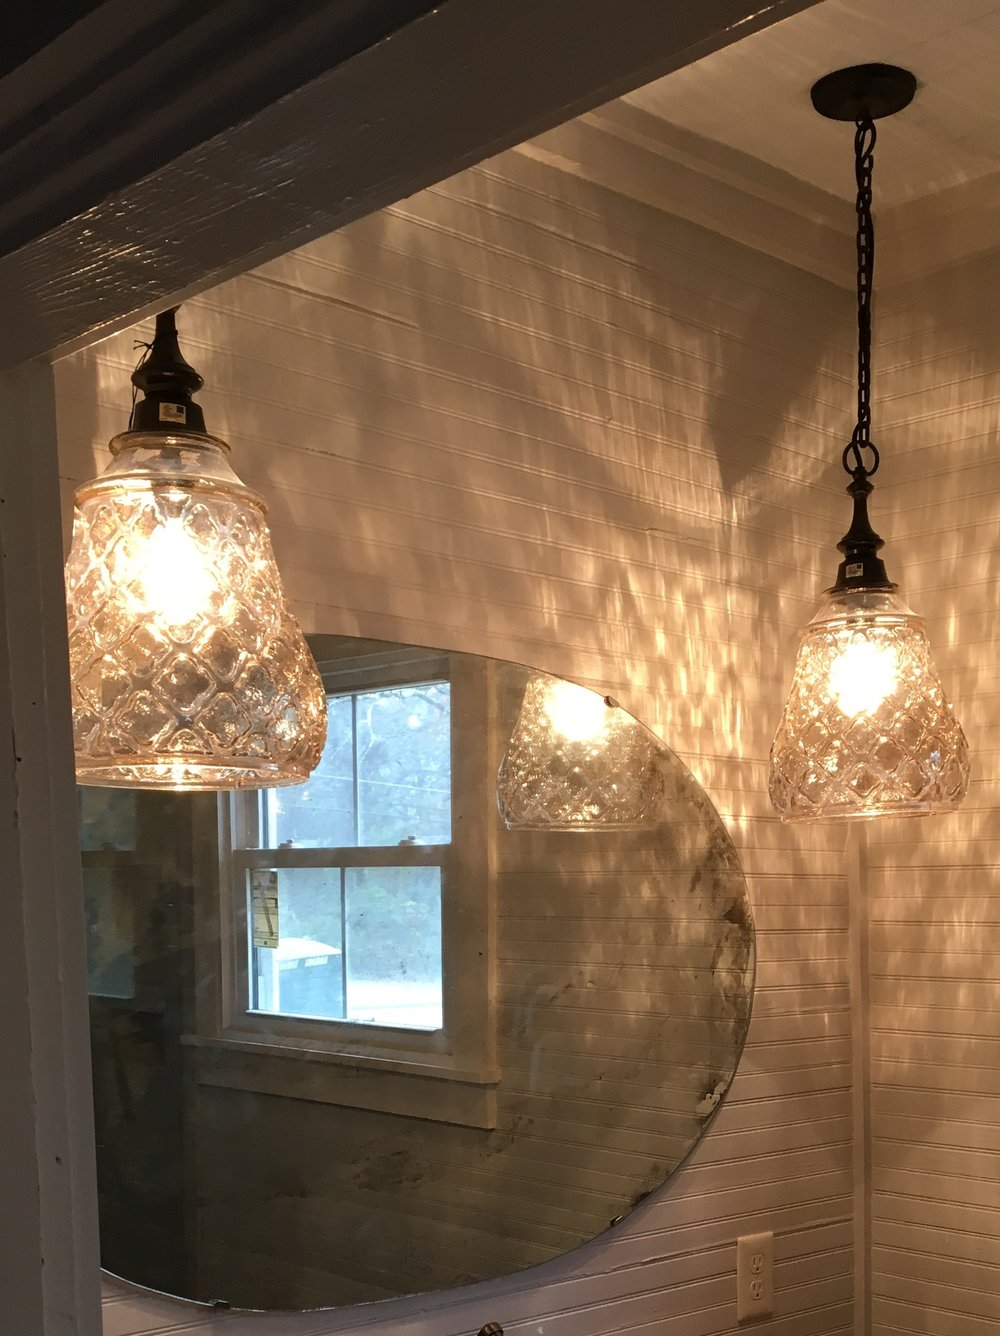 Shealy Front Bathroom Pendants.jpg